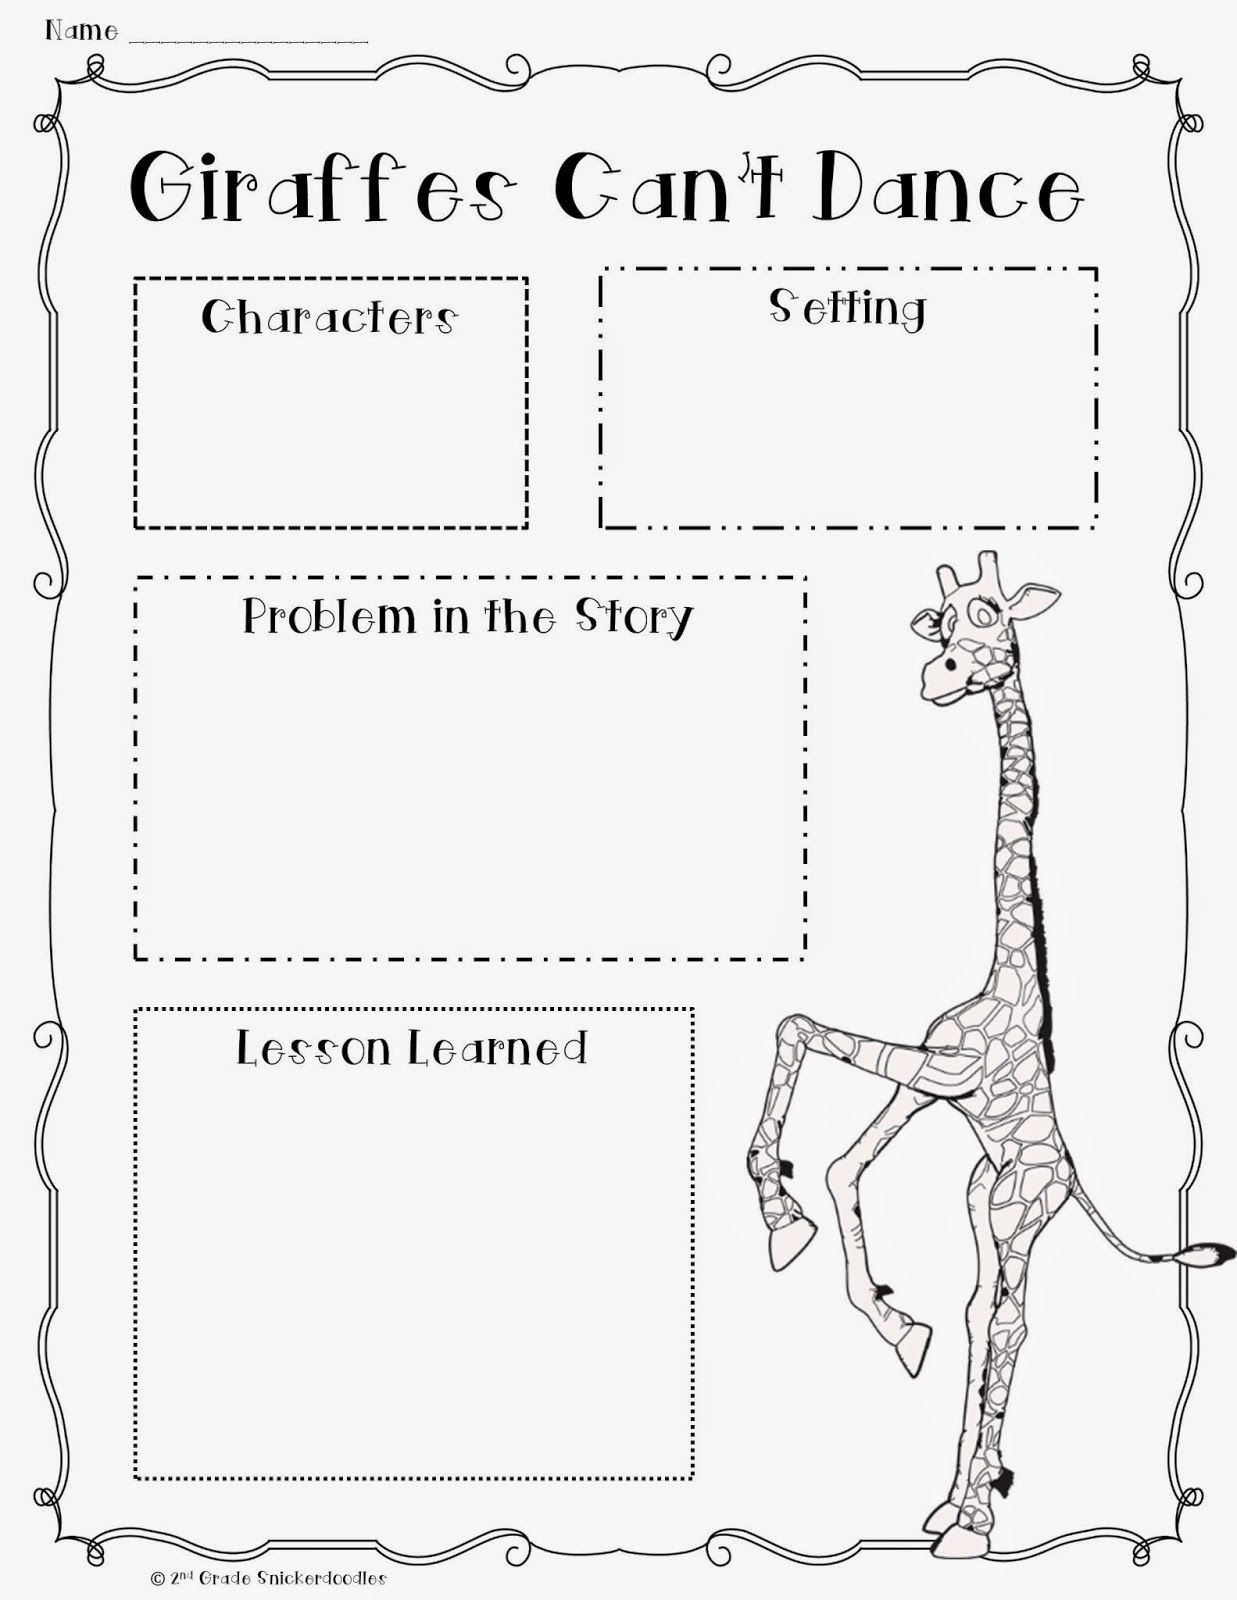 2nd Grade Snickerdoodles Giraffes Can T Dance Book Chat